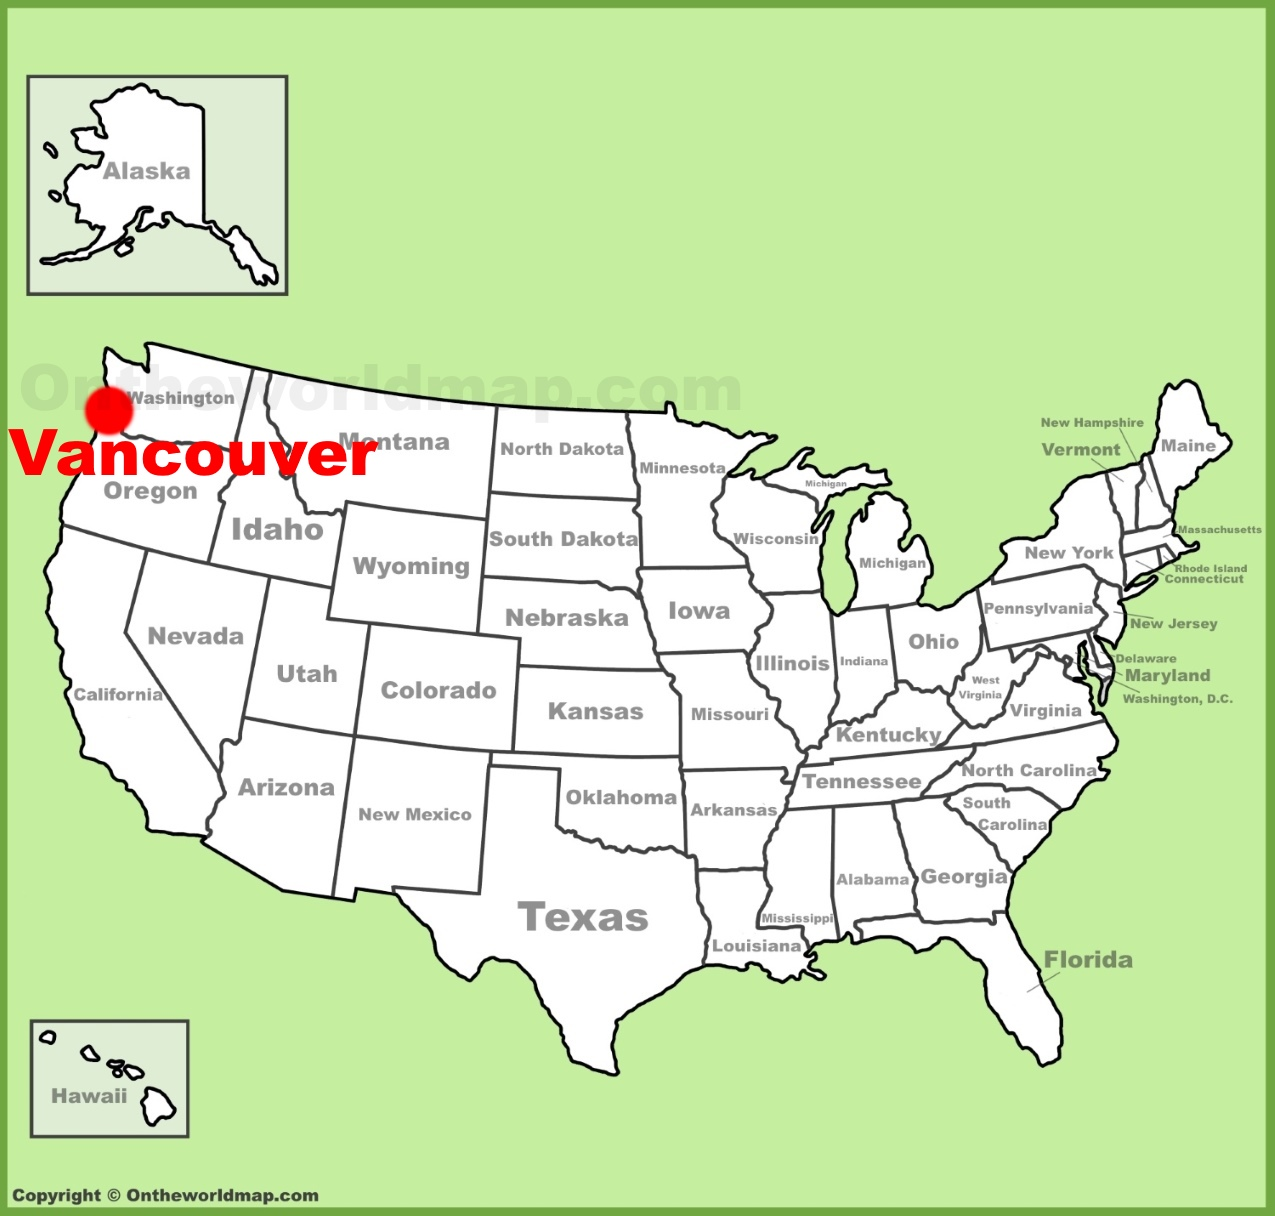 Vancouver Location On The Us Map - Vancouver-on-us-map